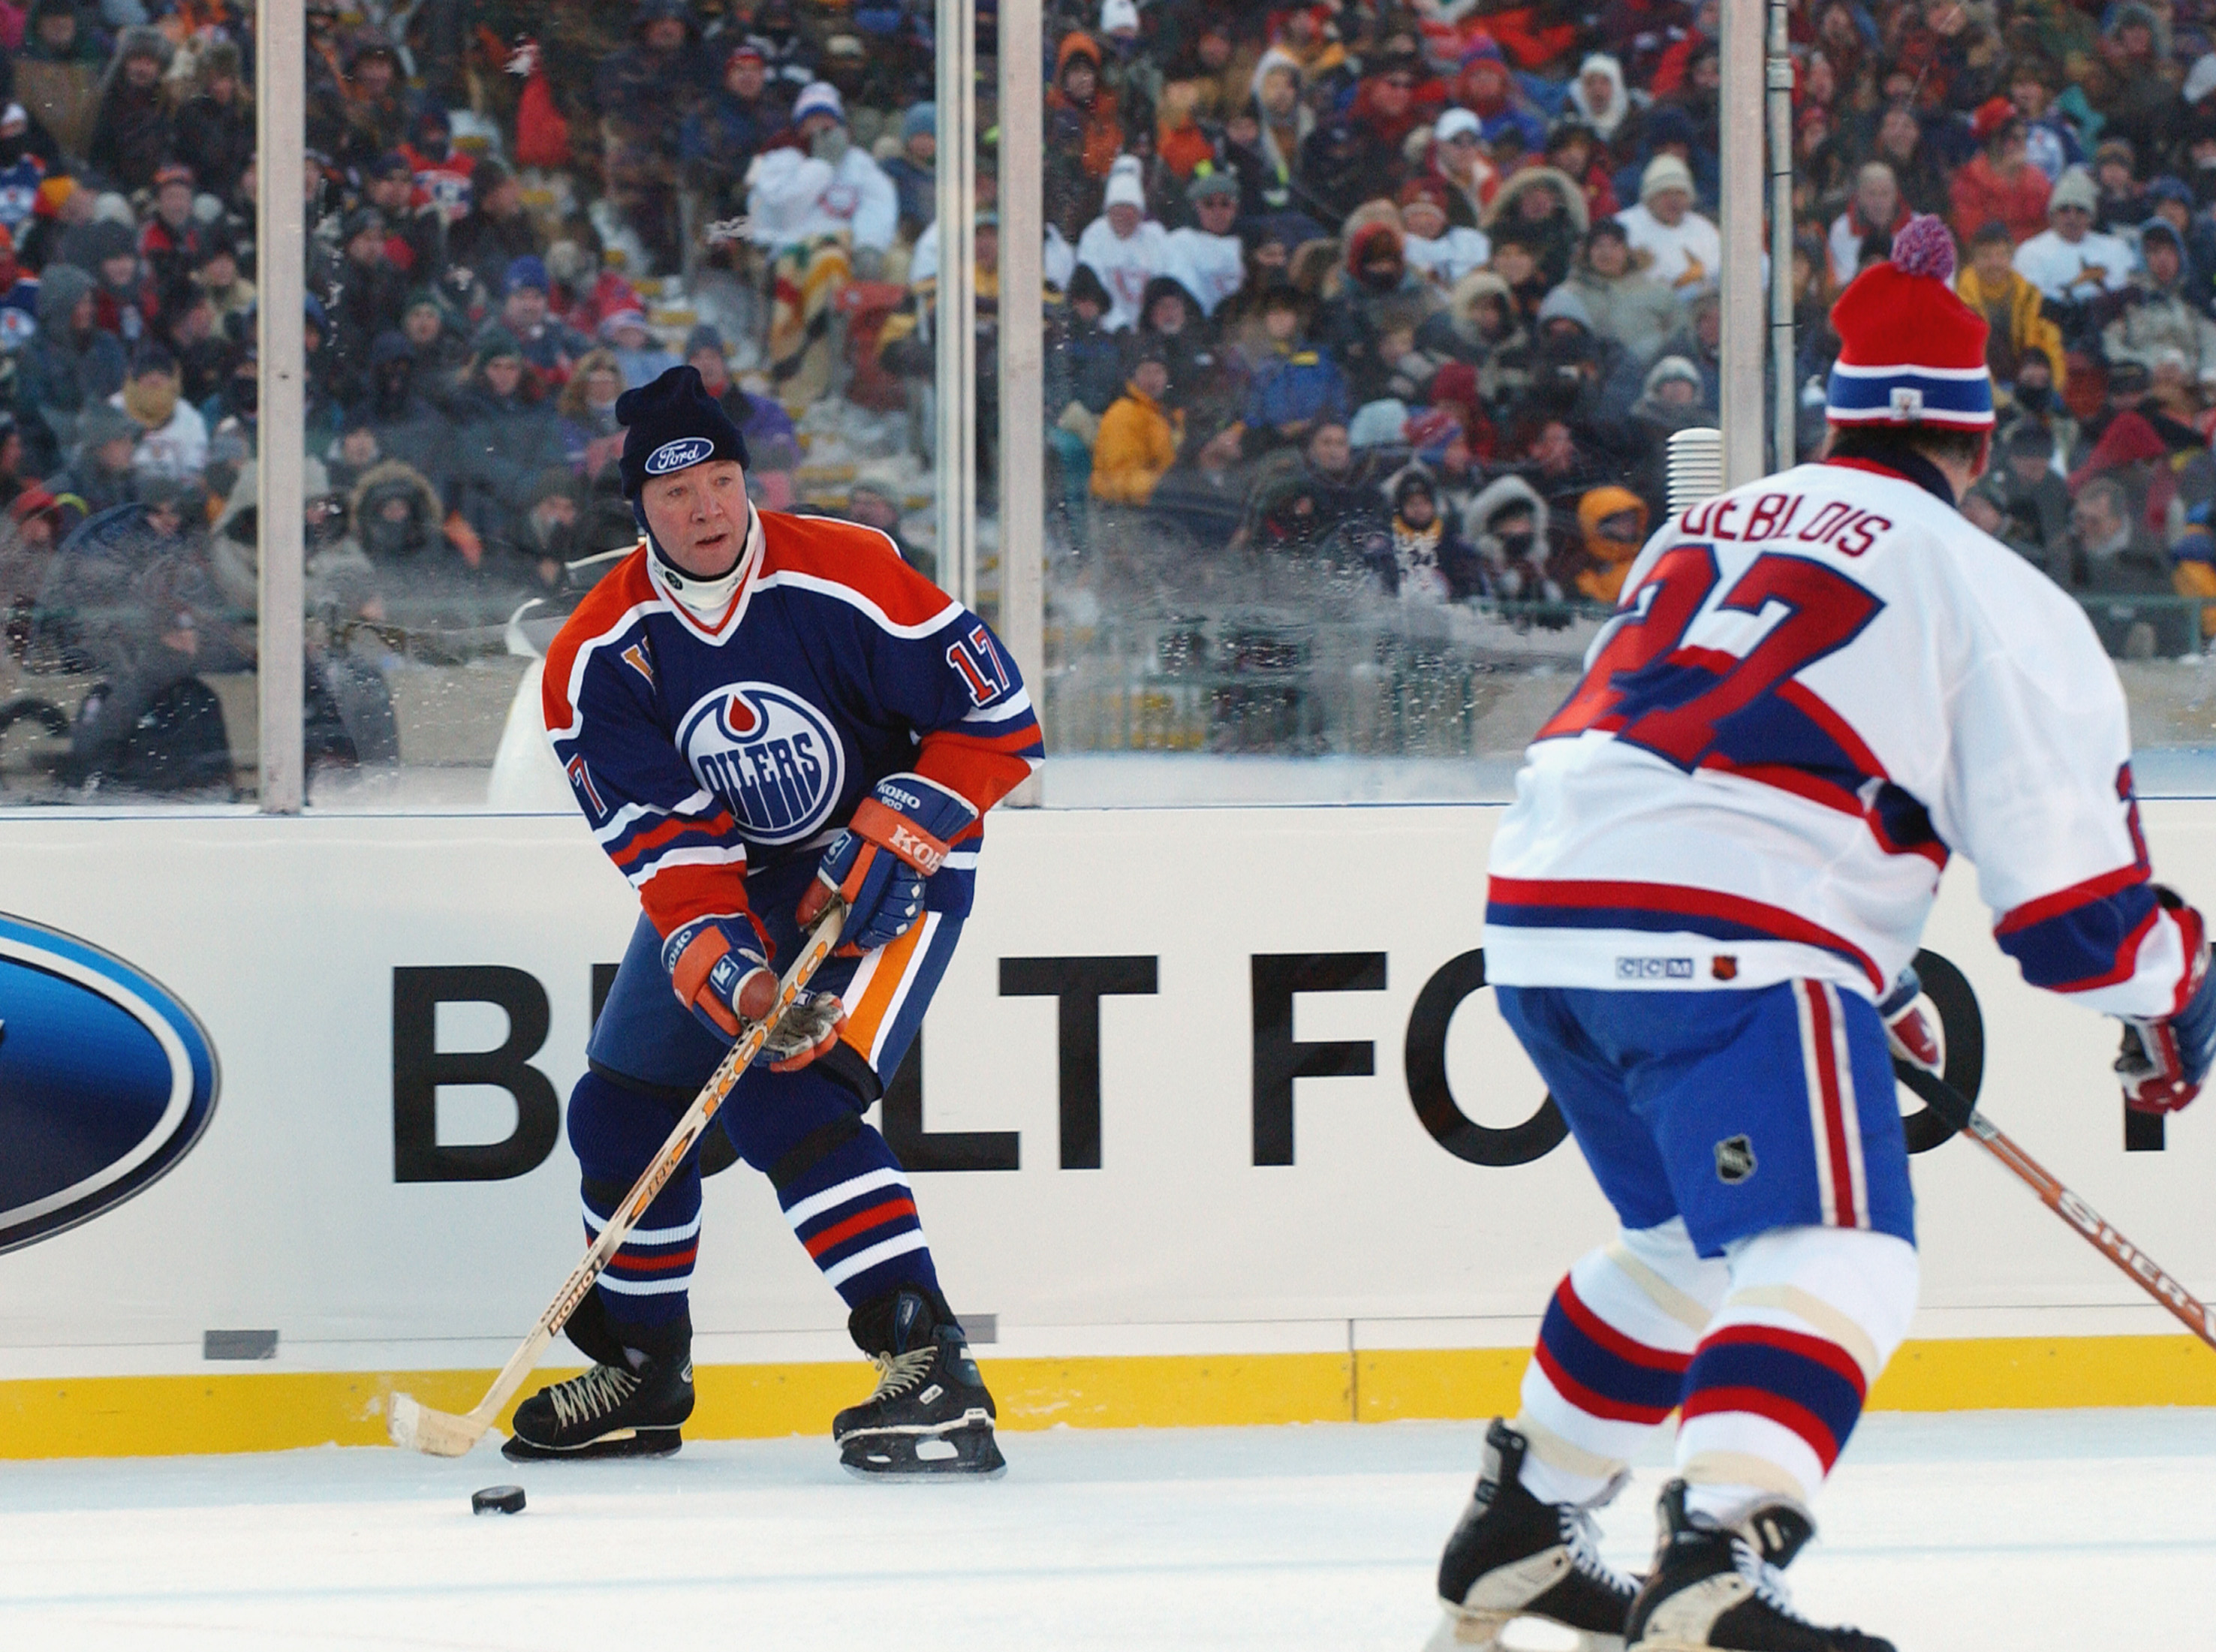 EDMONTON, CANADA - NOVEMBER 22:  Jari Kurri #17 of the Edmonton Oilers looks to make a play against Lucen Deblois #27 of the Montreal Canadiens during the Molson Canadien Heritage Classic on November 22, 2003 at Commonwealth Stadium in Edmonton, Canada. T